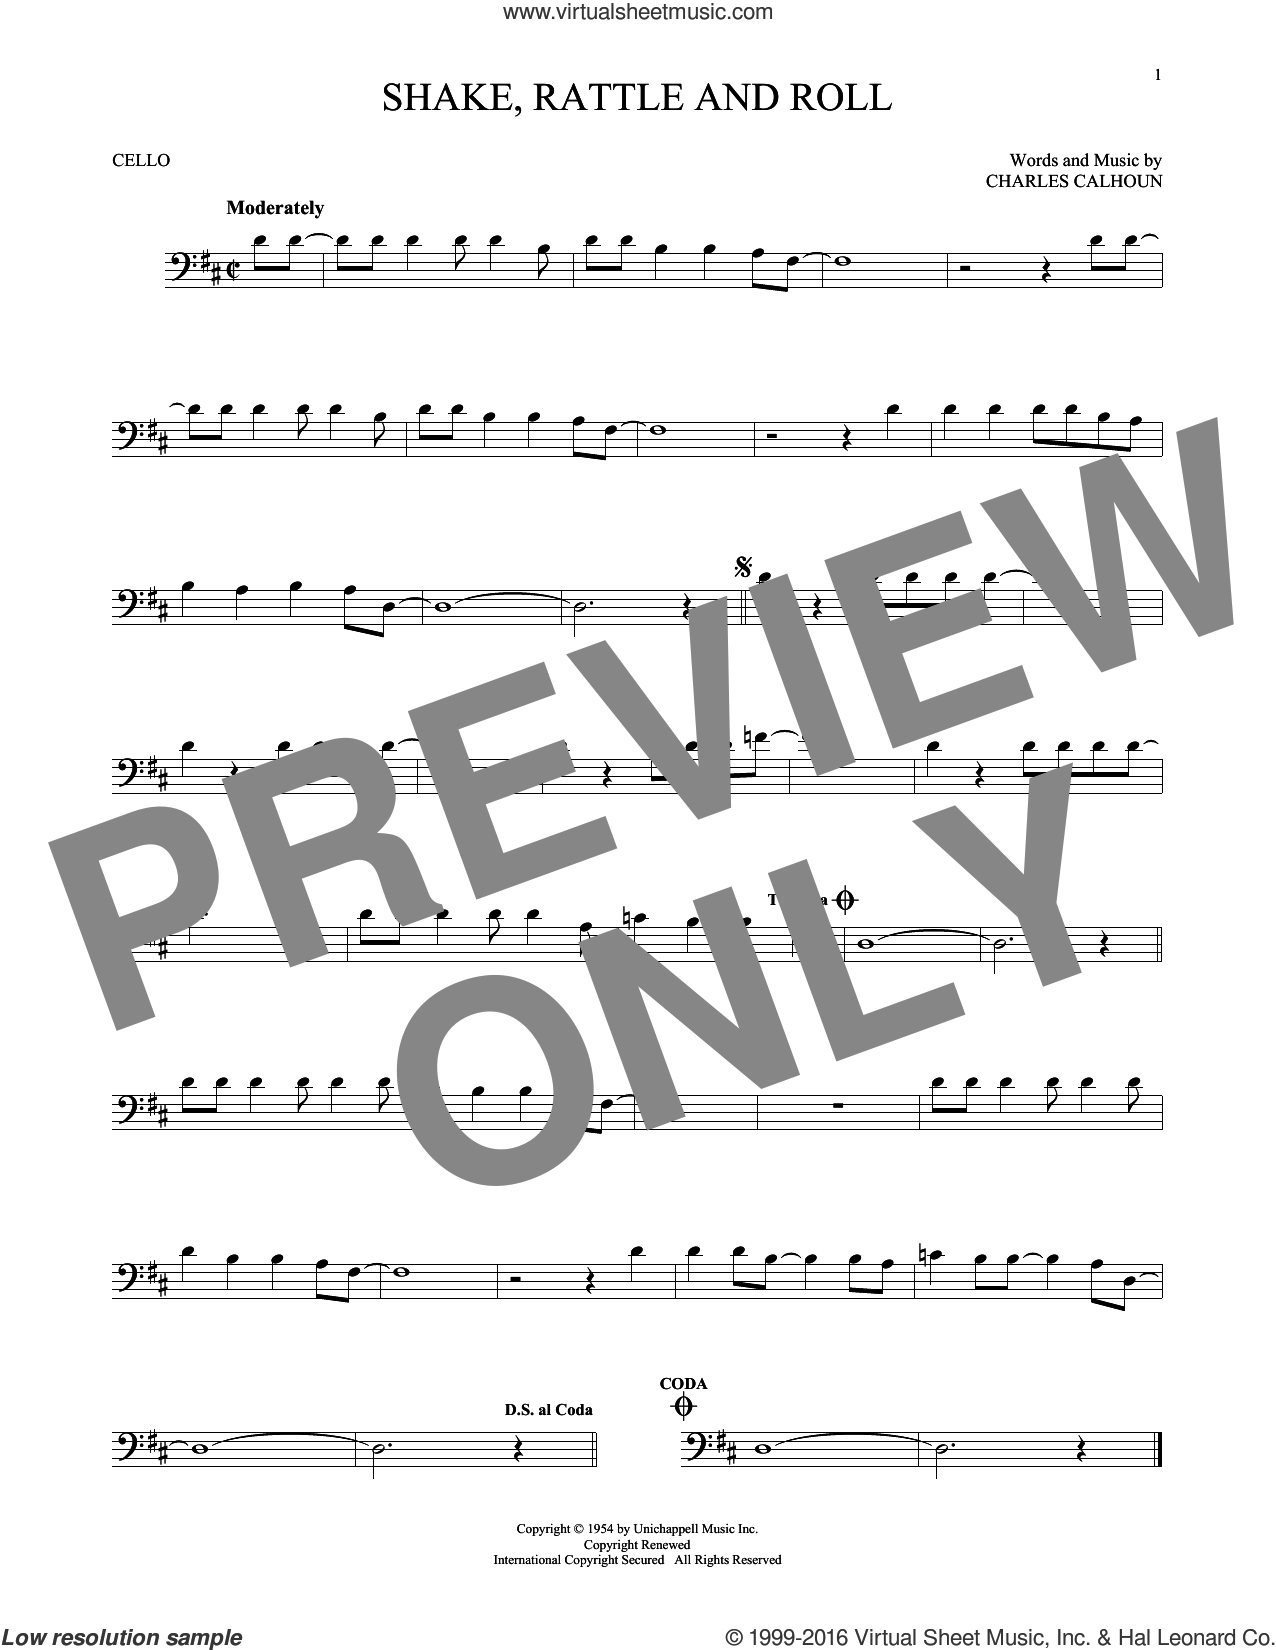 Shake, Rattle And Roll sheet music for cello solo by Bill Haley & His Comets, Arthur Conley and Charles Calhoun, intermediate skill level